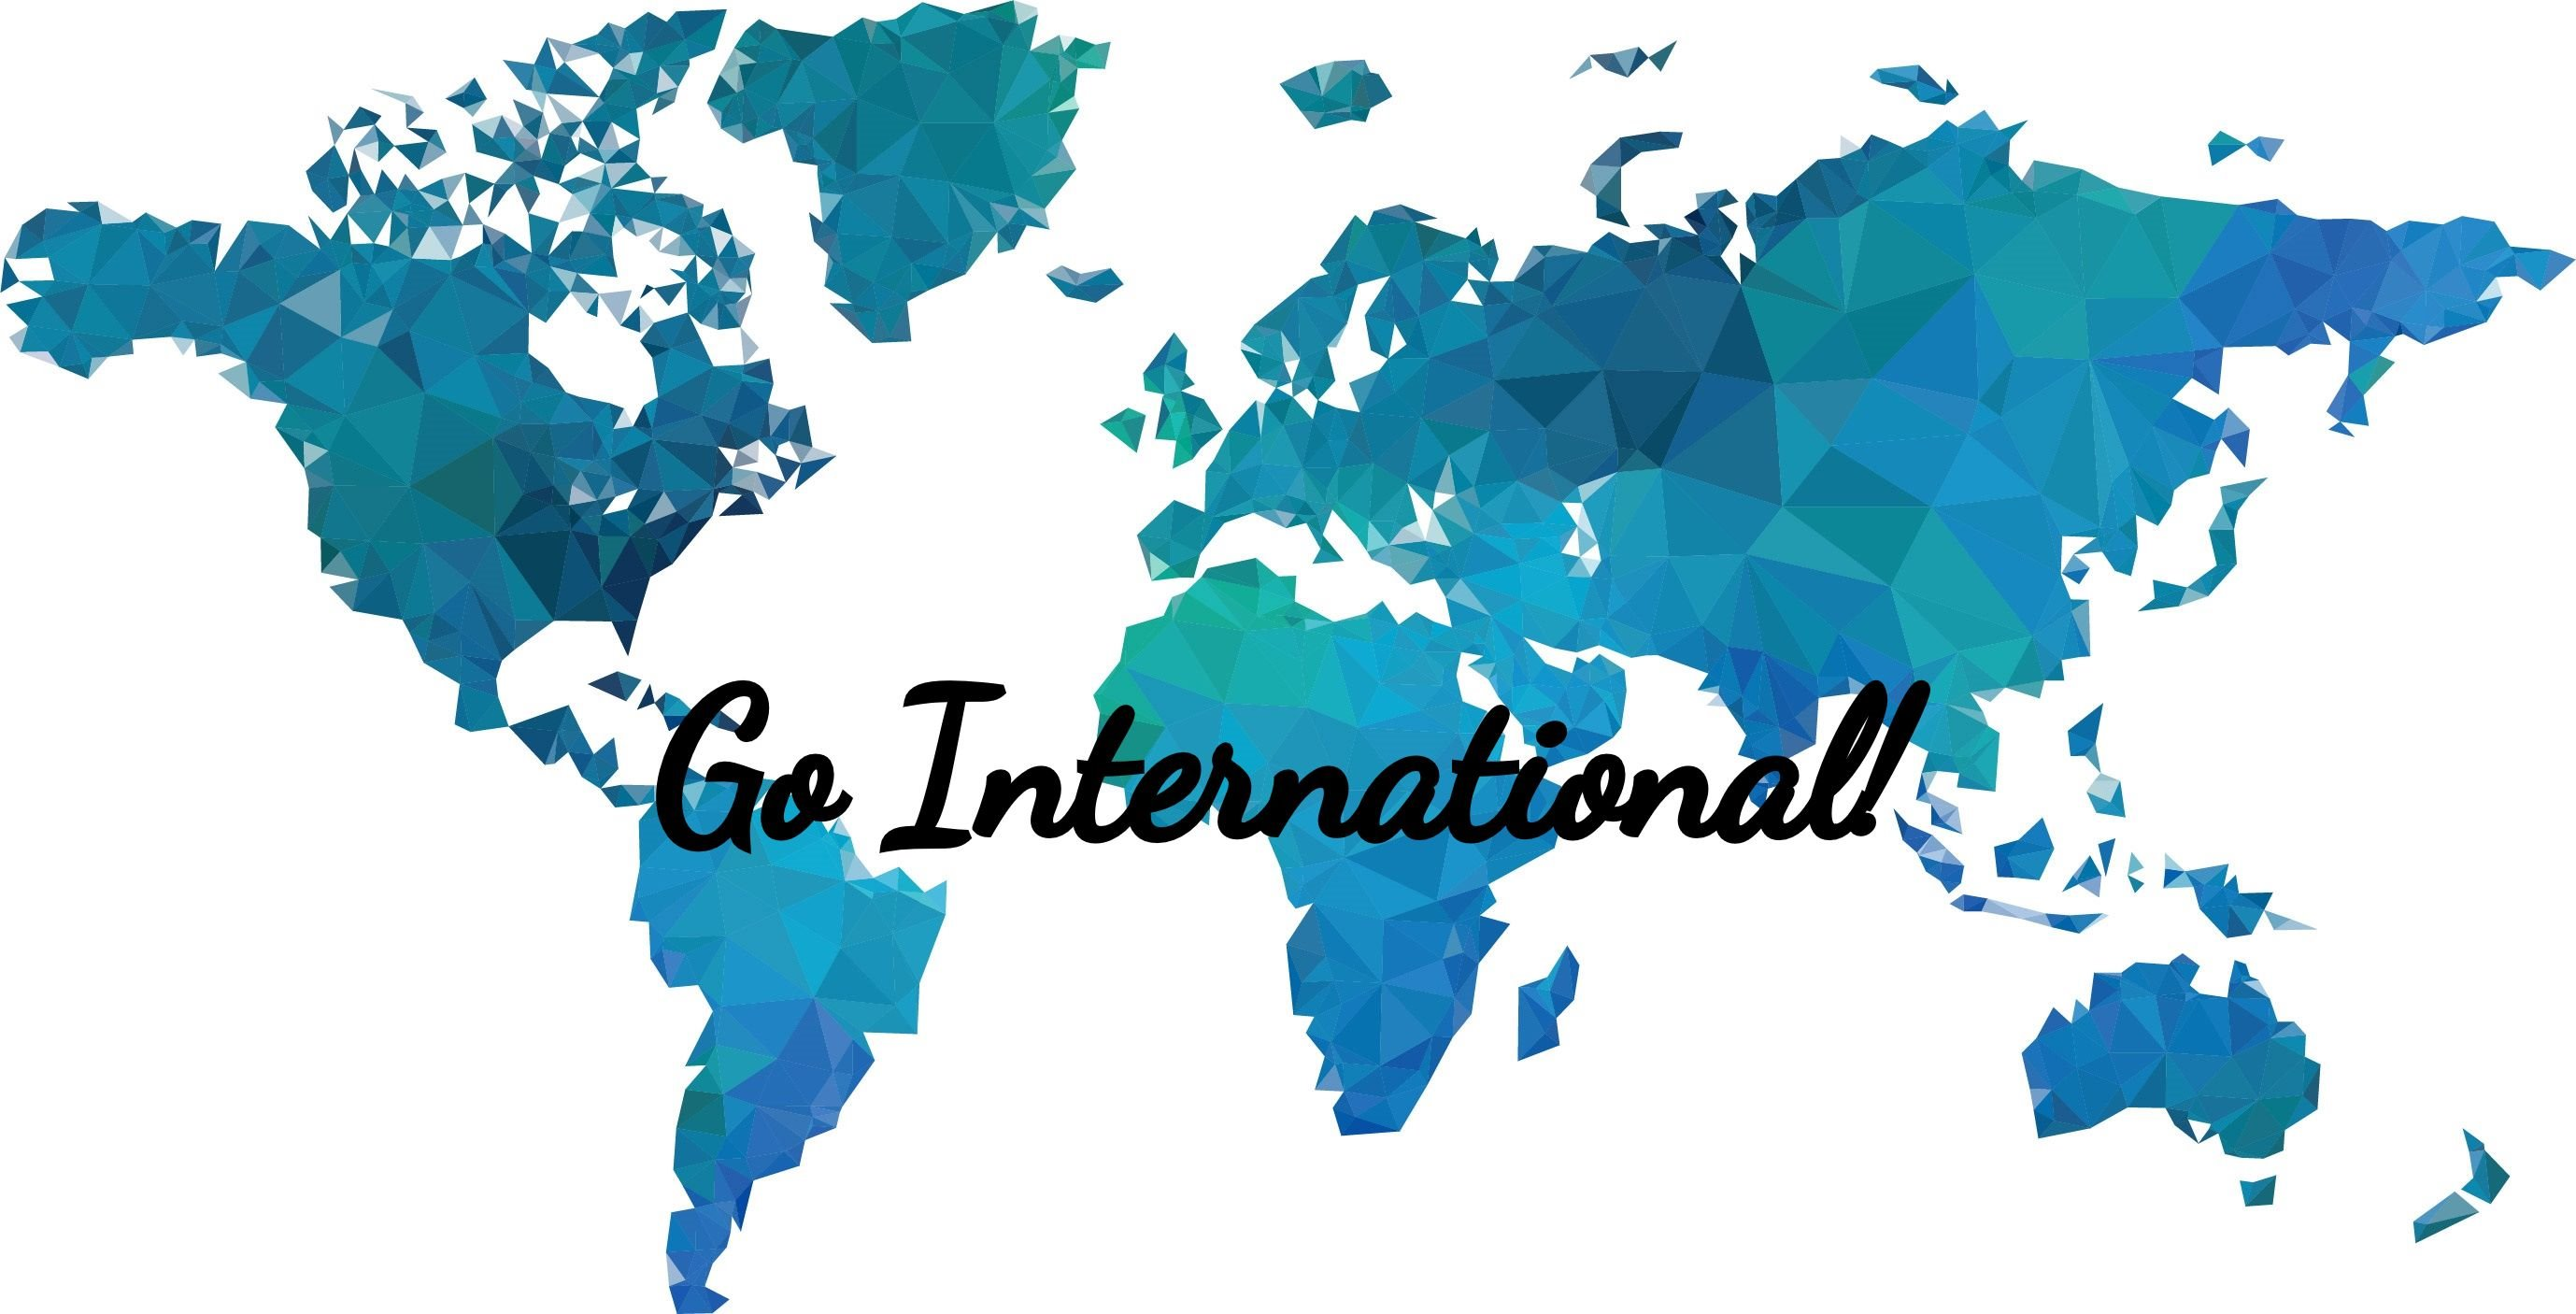 Go International!